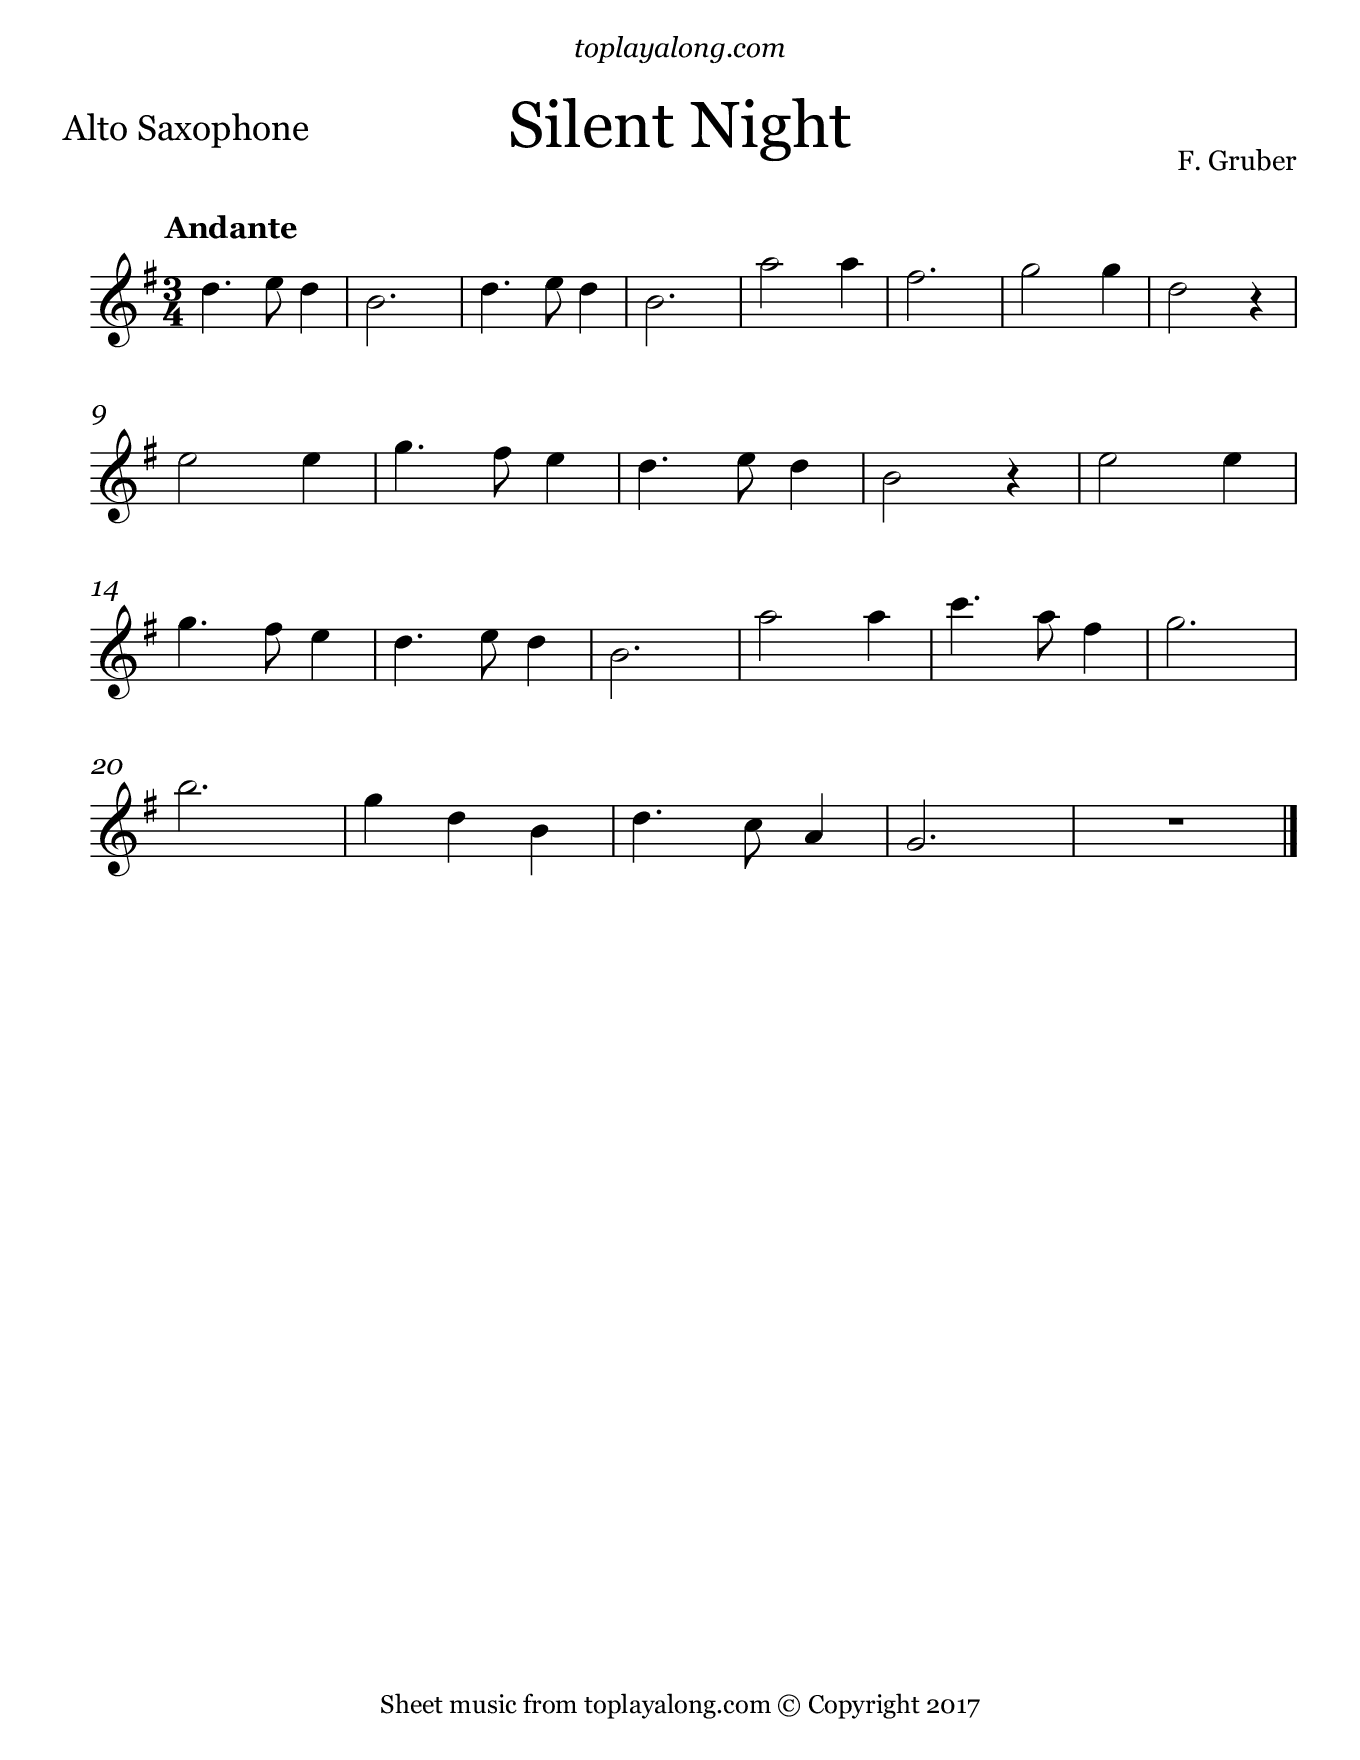 Silent Night by Gruber. Sheet music for Alto Sax, page 1.